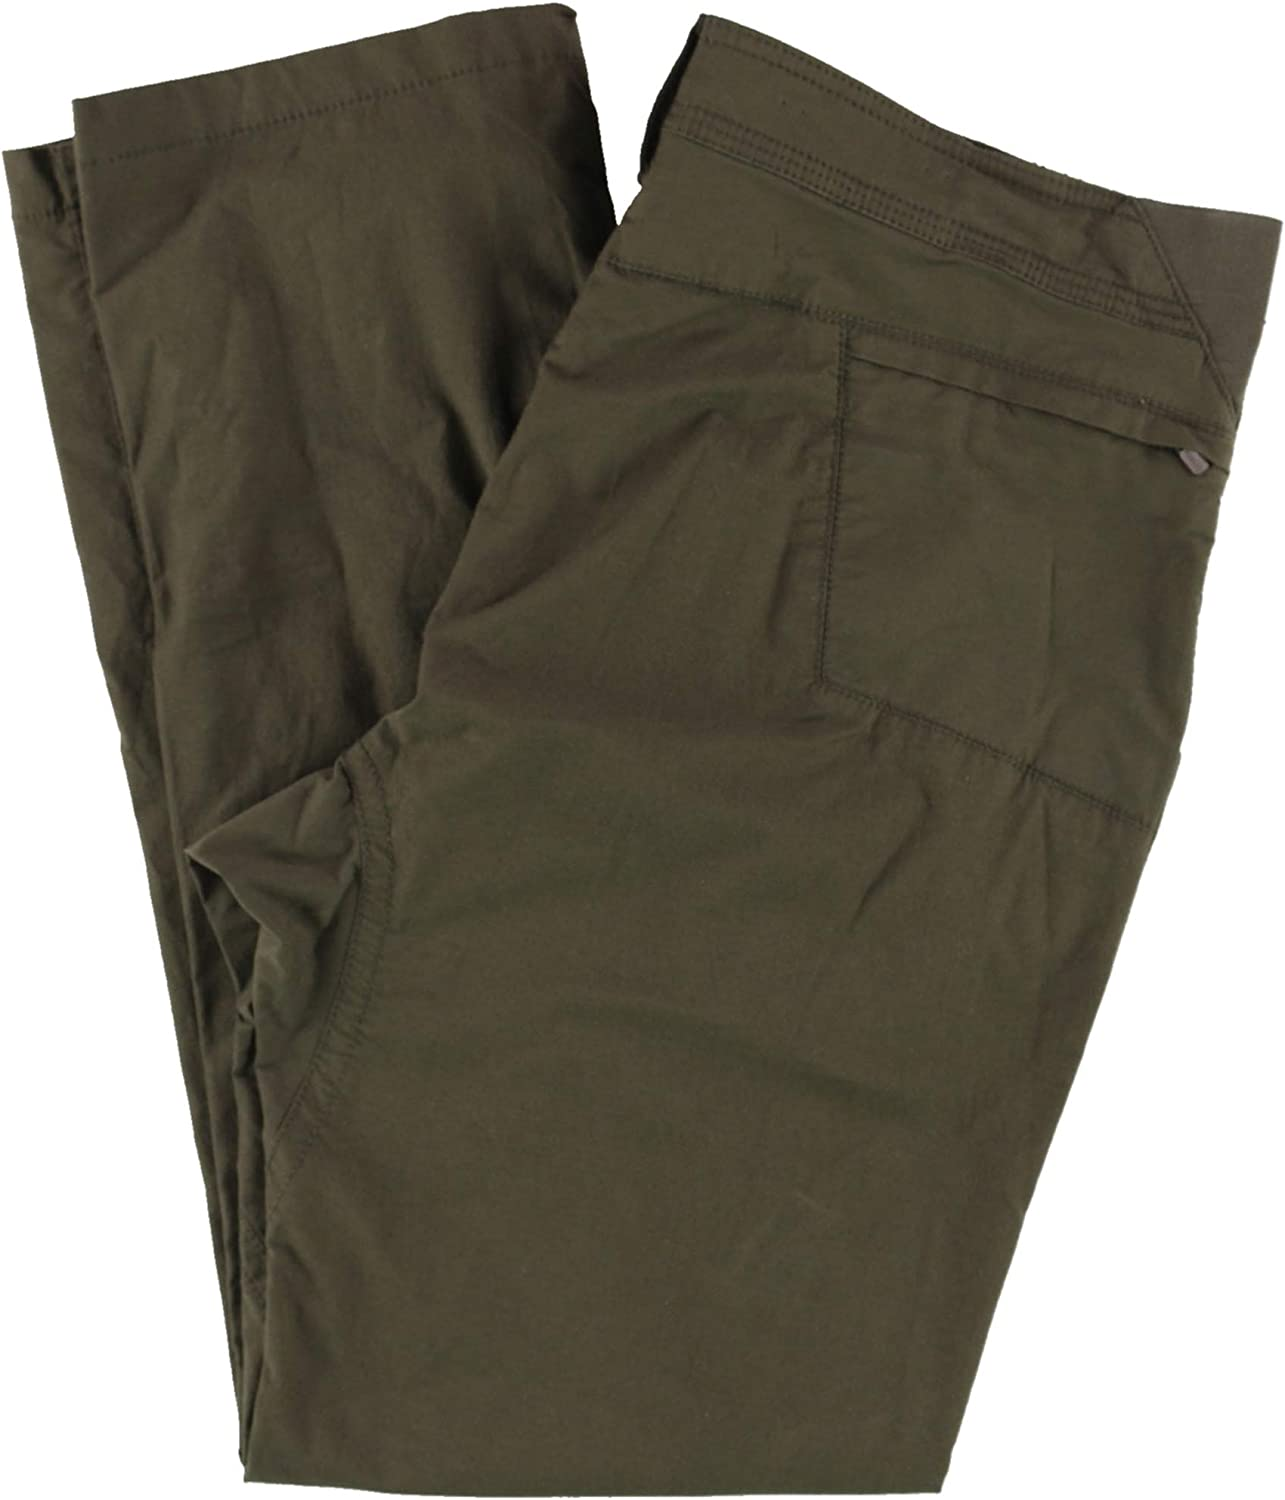 Mens Hybrid Casual Carpenter Pants G.H Bass /& Co